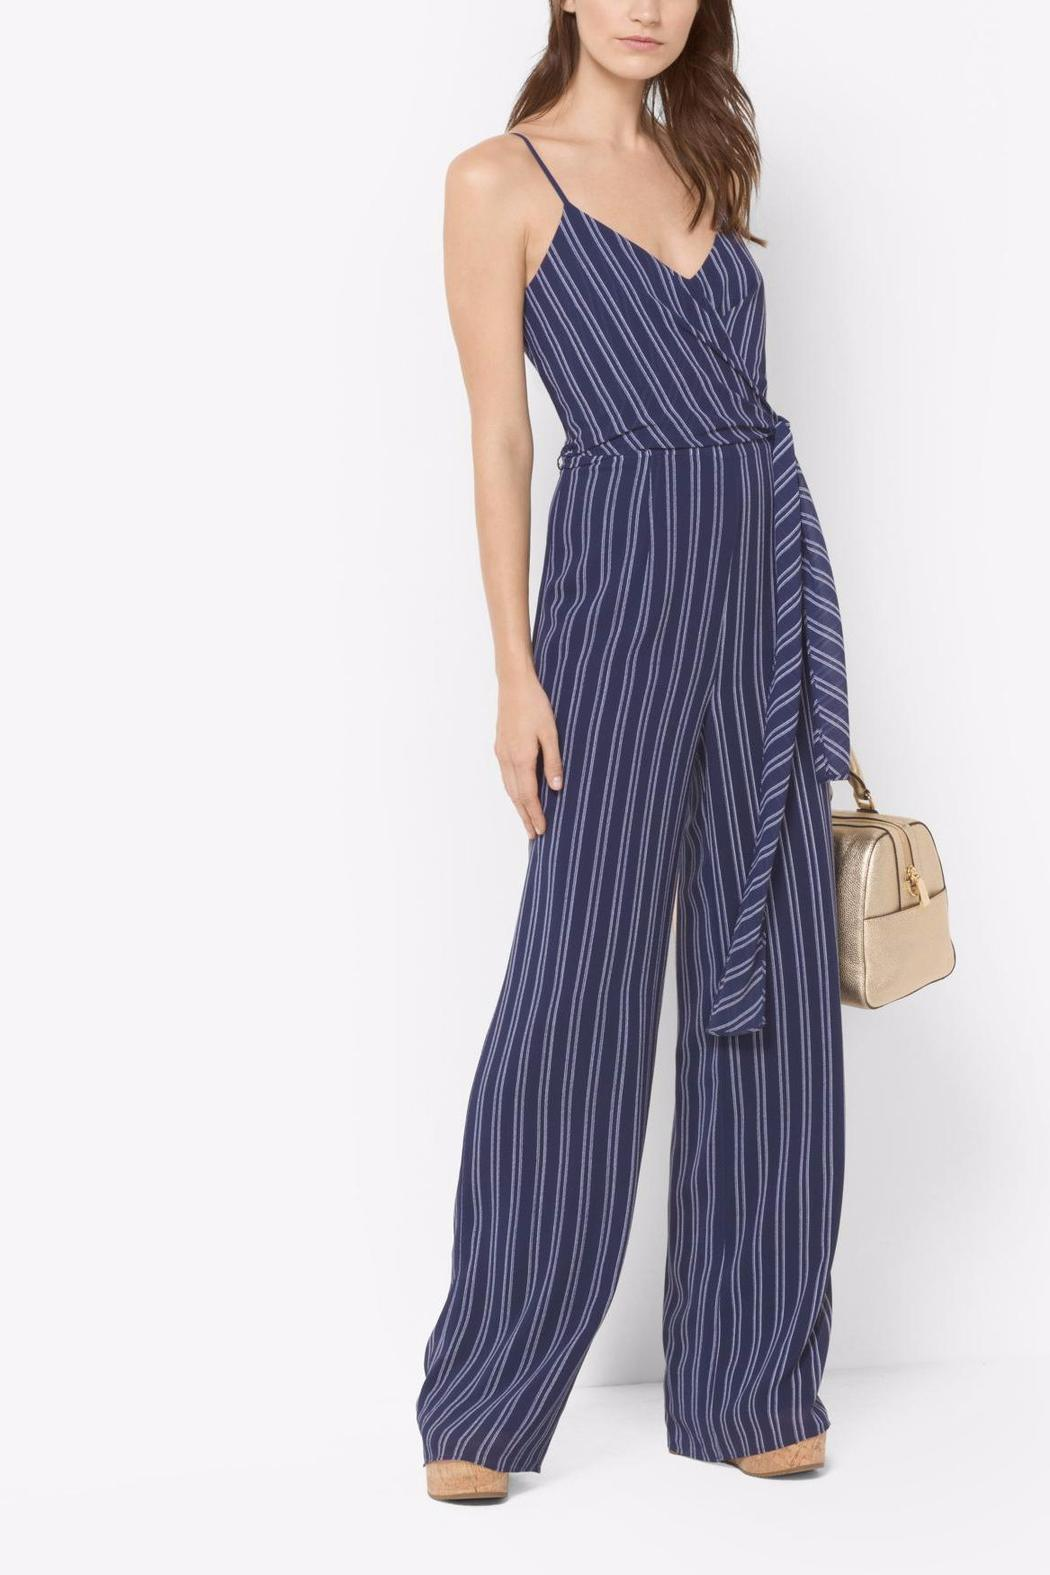 3557d3e1a732 Michael by Michael Kors Striped Tie Waist Jumpsuit - Front Cropped Image